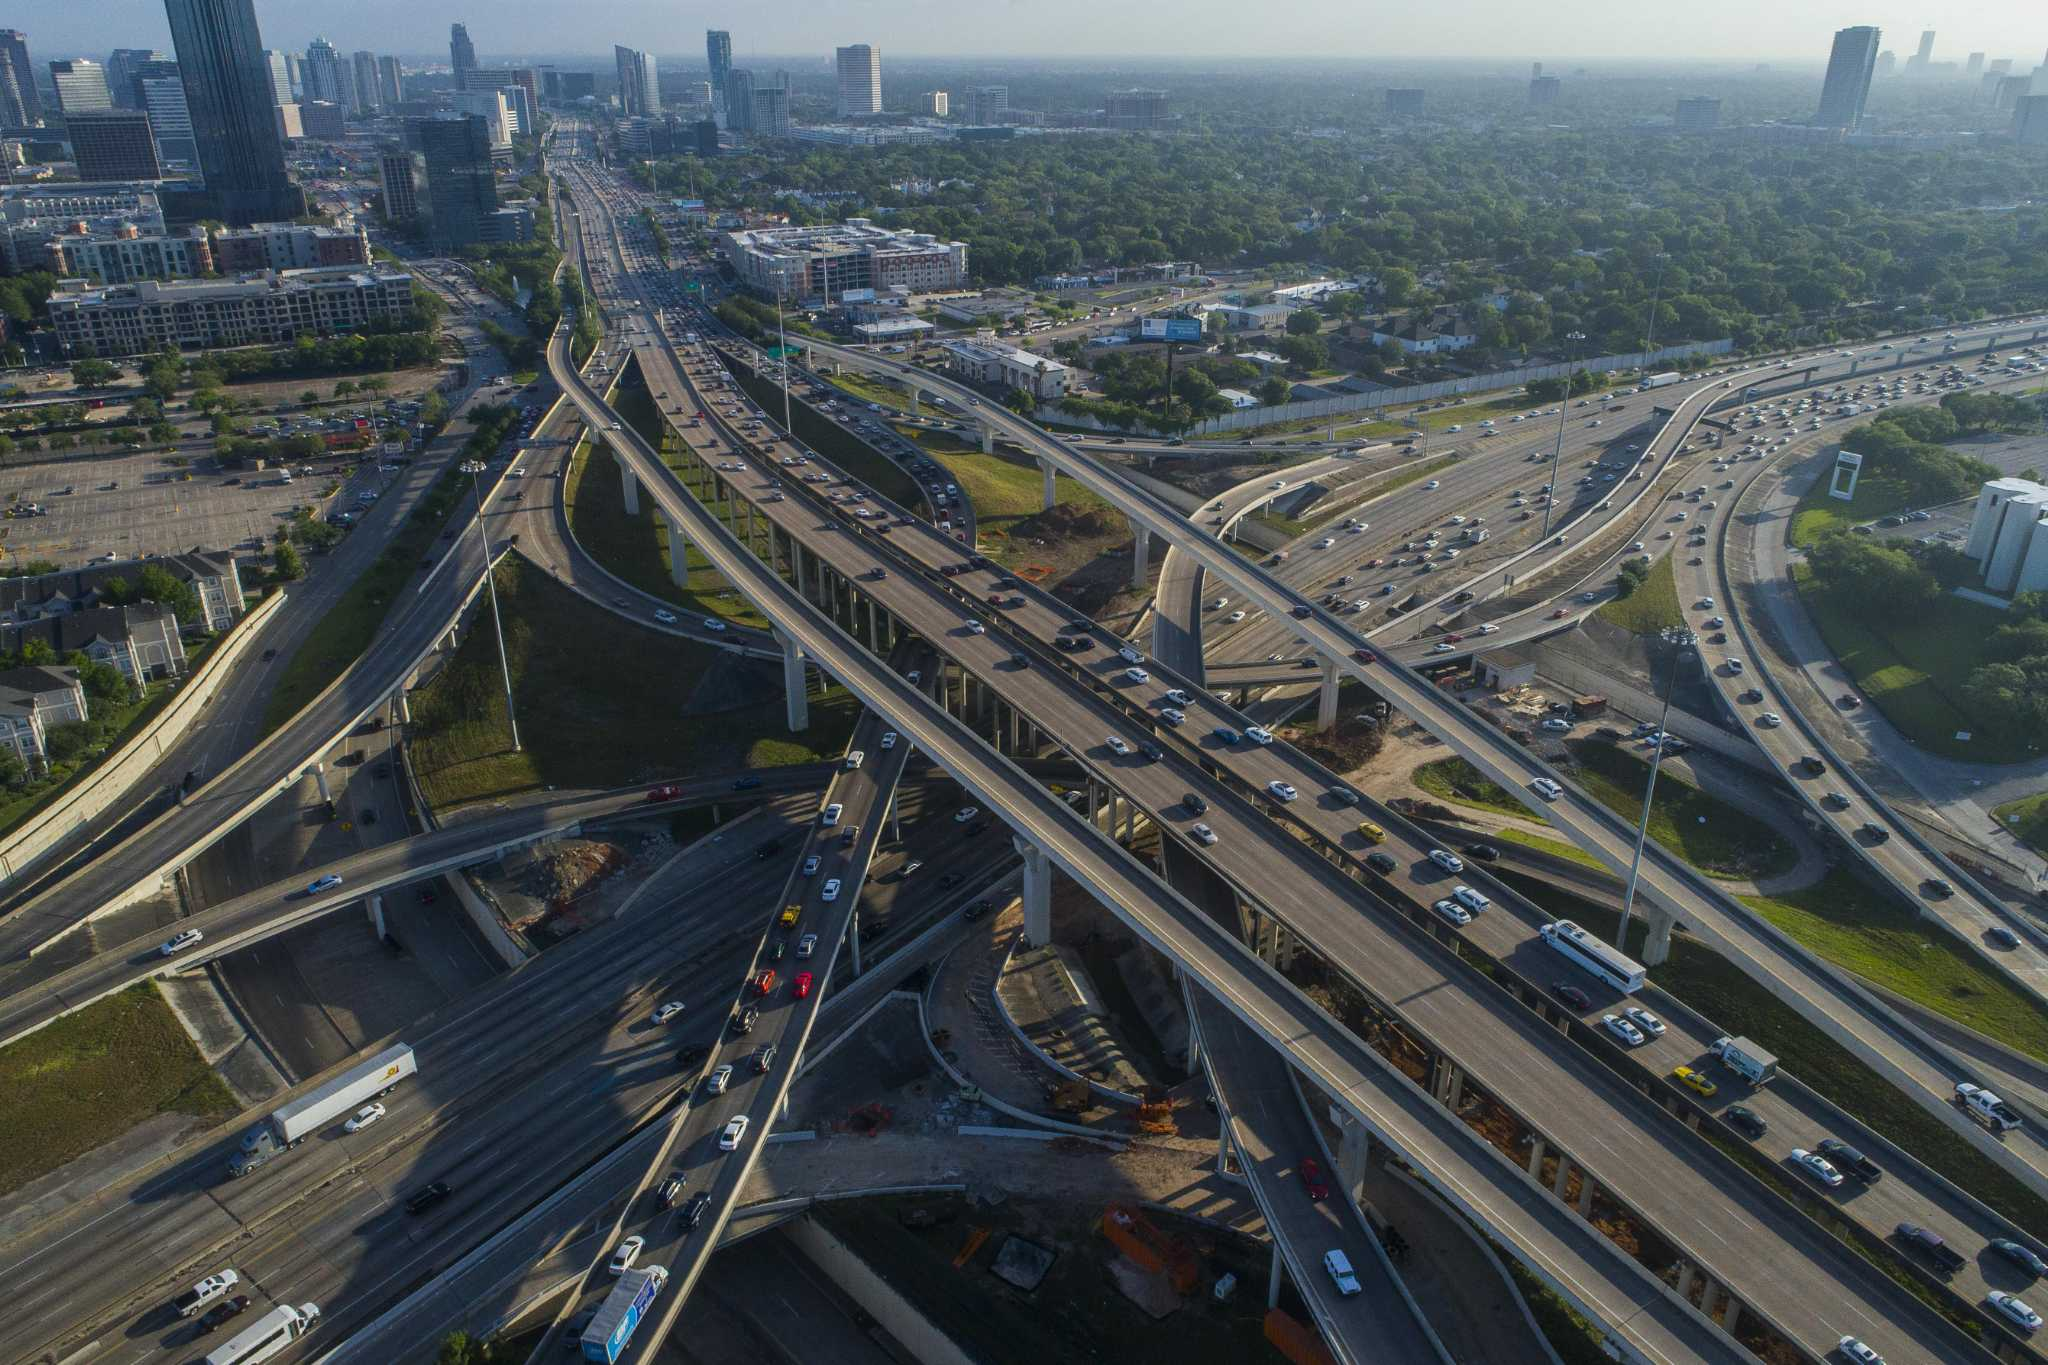 New construction headache for West Loop 610 drivers